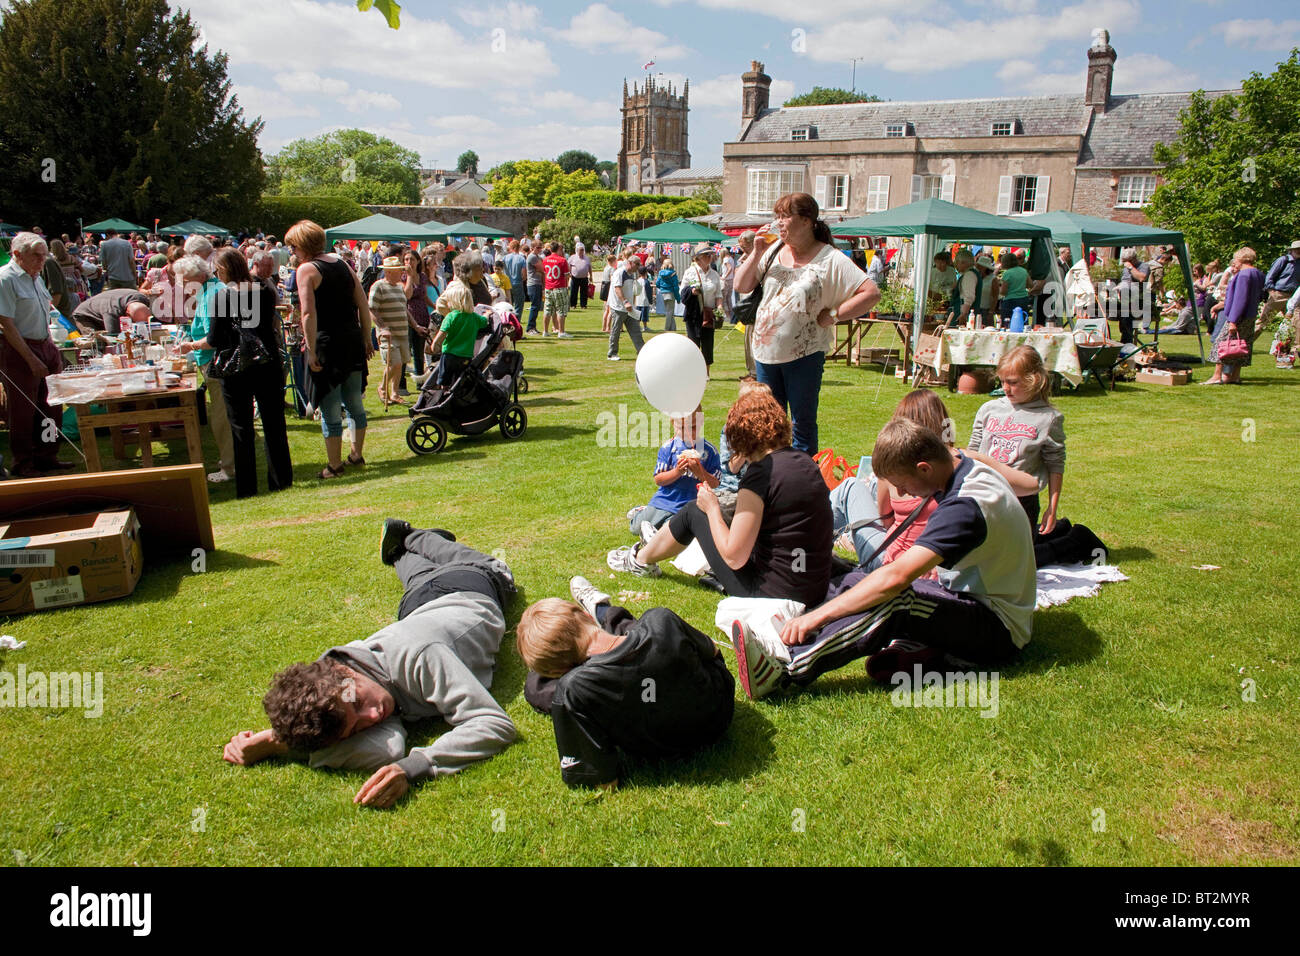 A family sits on the grass at the annual summer Charminster Fete, in the Dorset village of Charminster. DAVID MANSELL - Stock Image